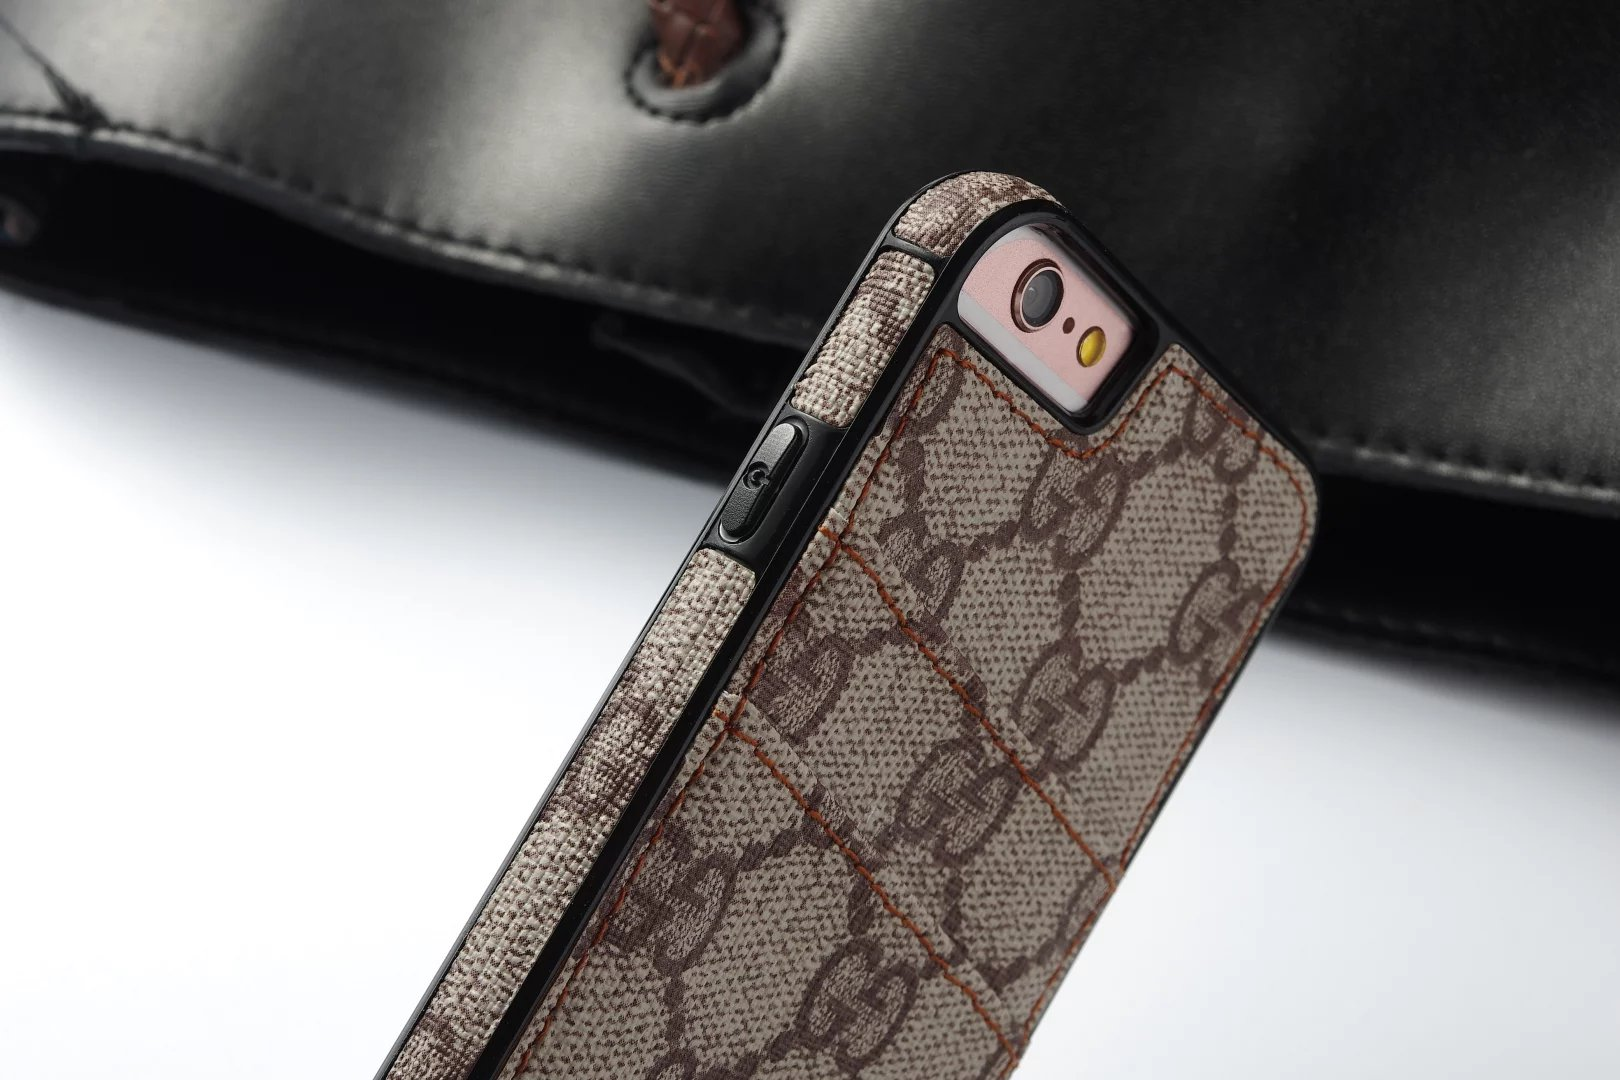 iphone hülle holz coole iphone hüllen Louis Vuitton iphone7 Plus hülle iphone 7 Plus geldbeutel iphone 7 Plus glitzer hülle iphone 6 datum ipad ca7 leder schutzhülle für iphone 7 Plus s iphone 7 Plus erscheinungsdatum